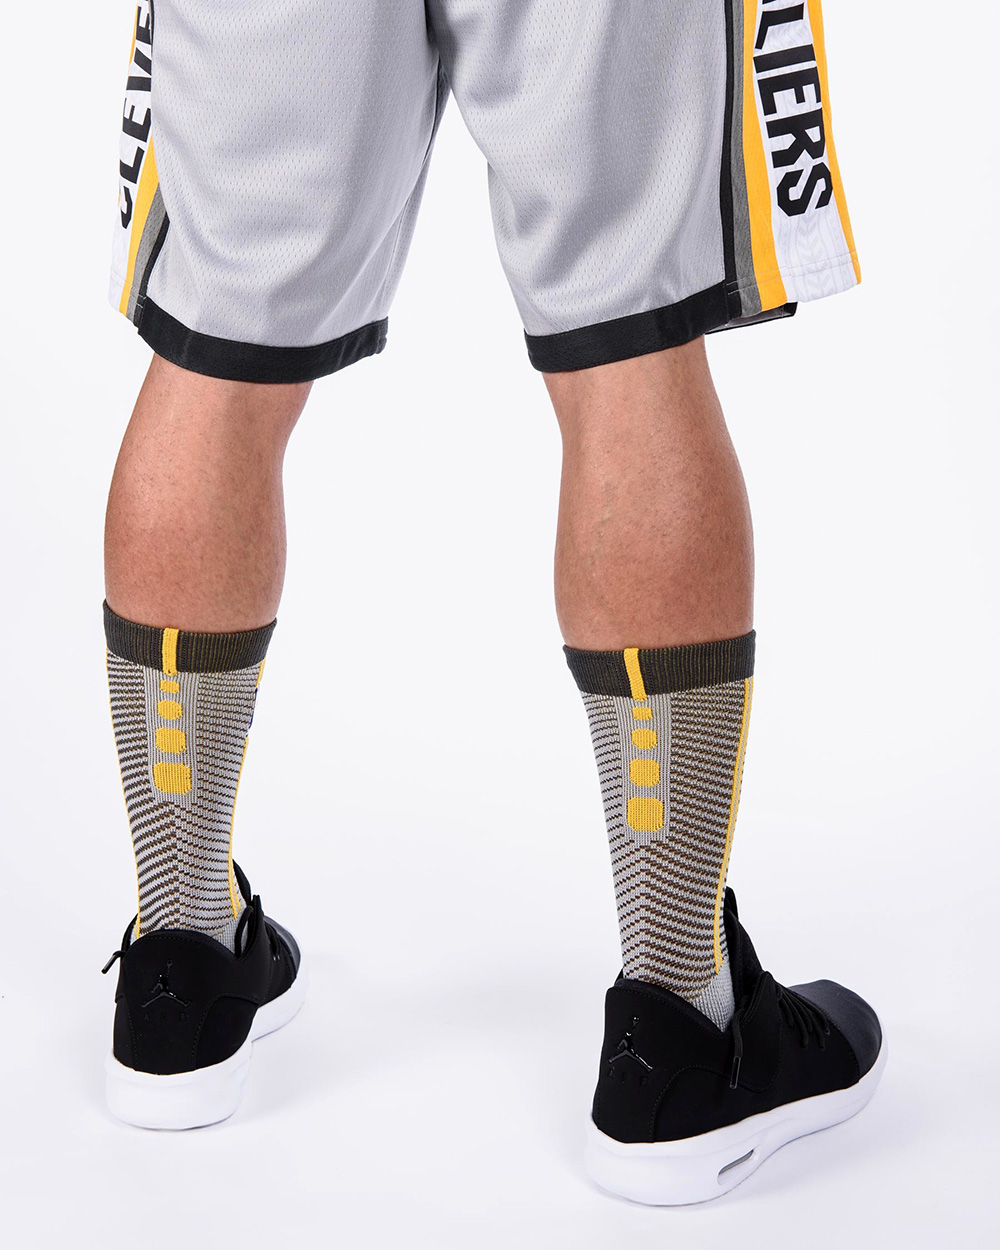 Nike NBA Cleveland Cavaliers City Edition Swingman Shorts - Clothes Shorts  - Sporting goods  8c2afc2eb